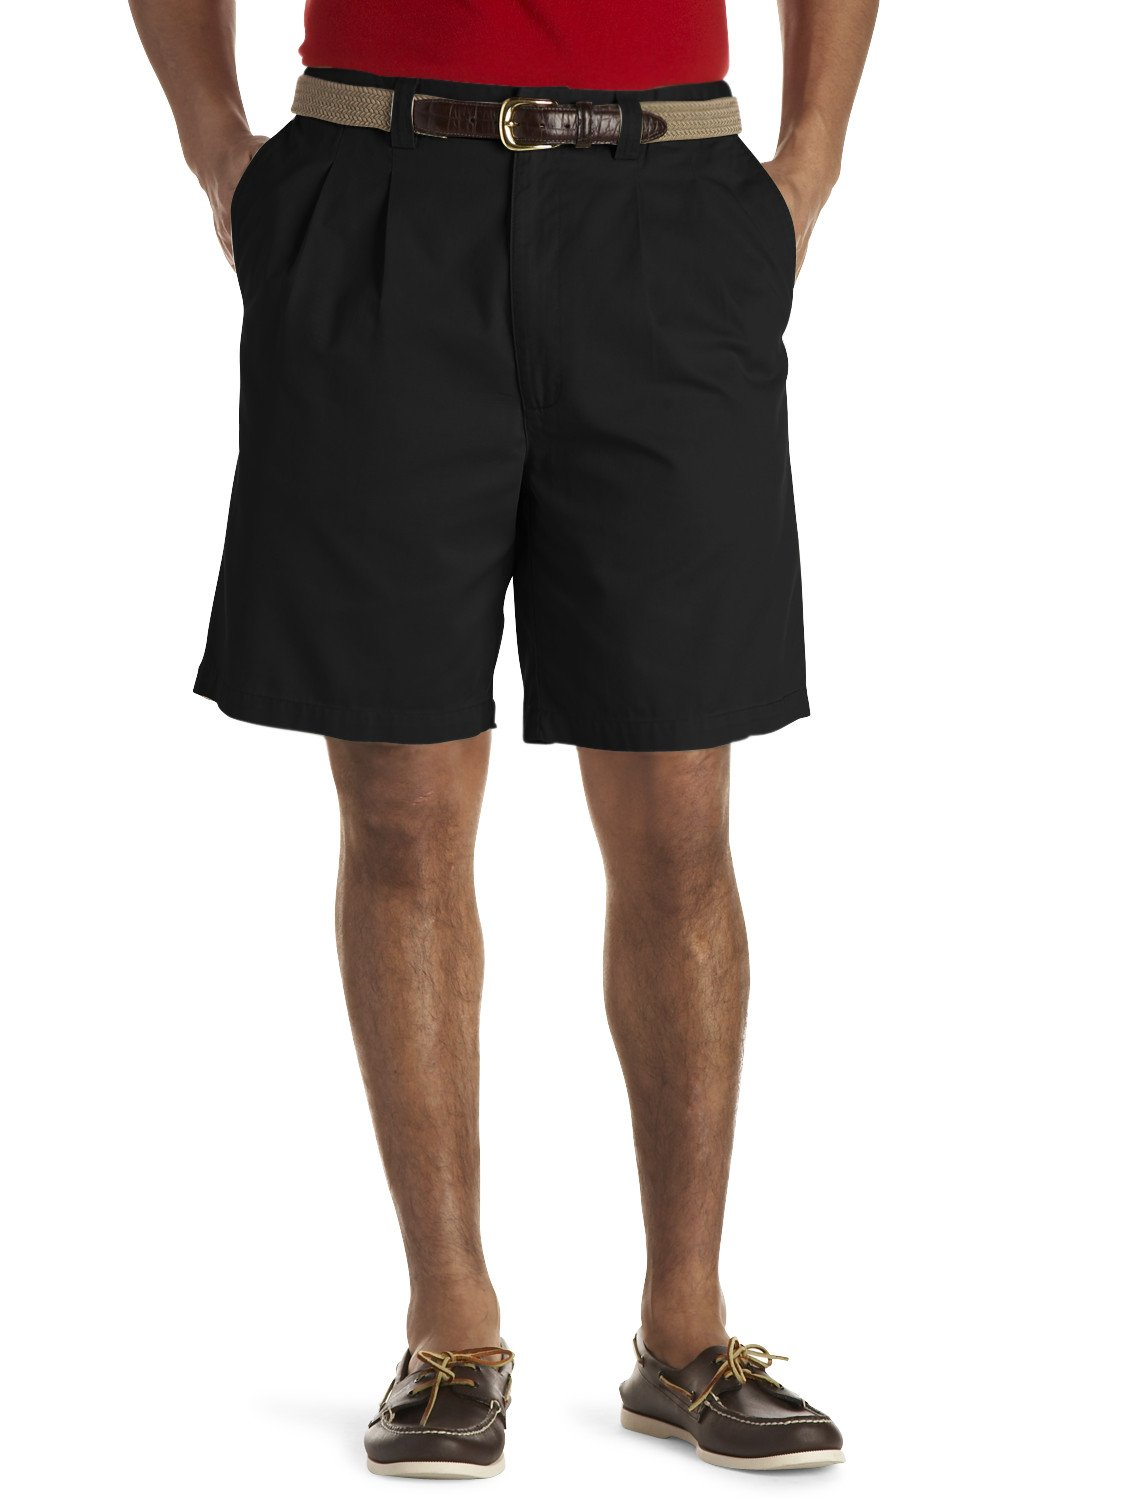 Harbor Bay by DXL Big and Tall Waist-Relaxer Pleated Twill Shorts (56 Reg, Black)